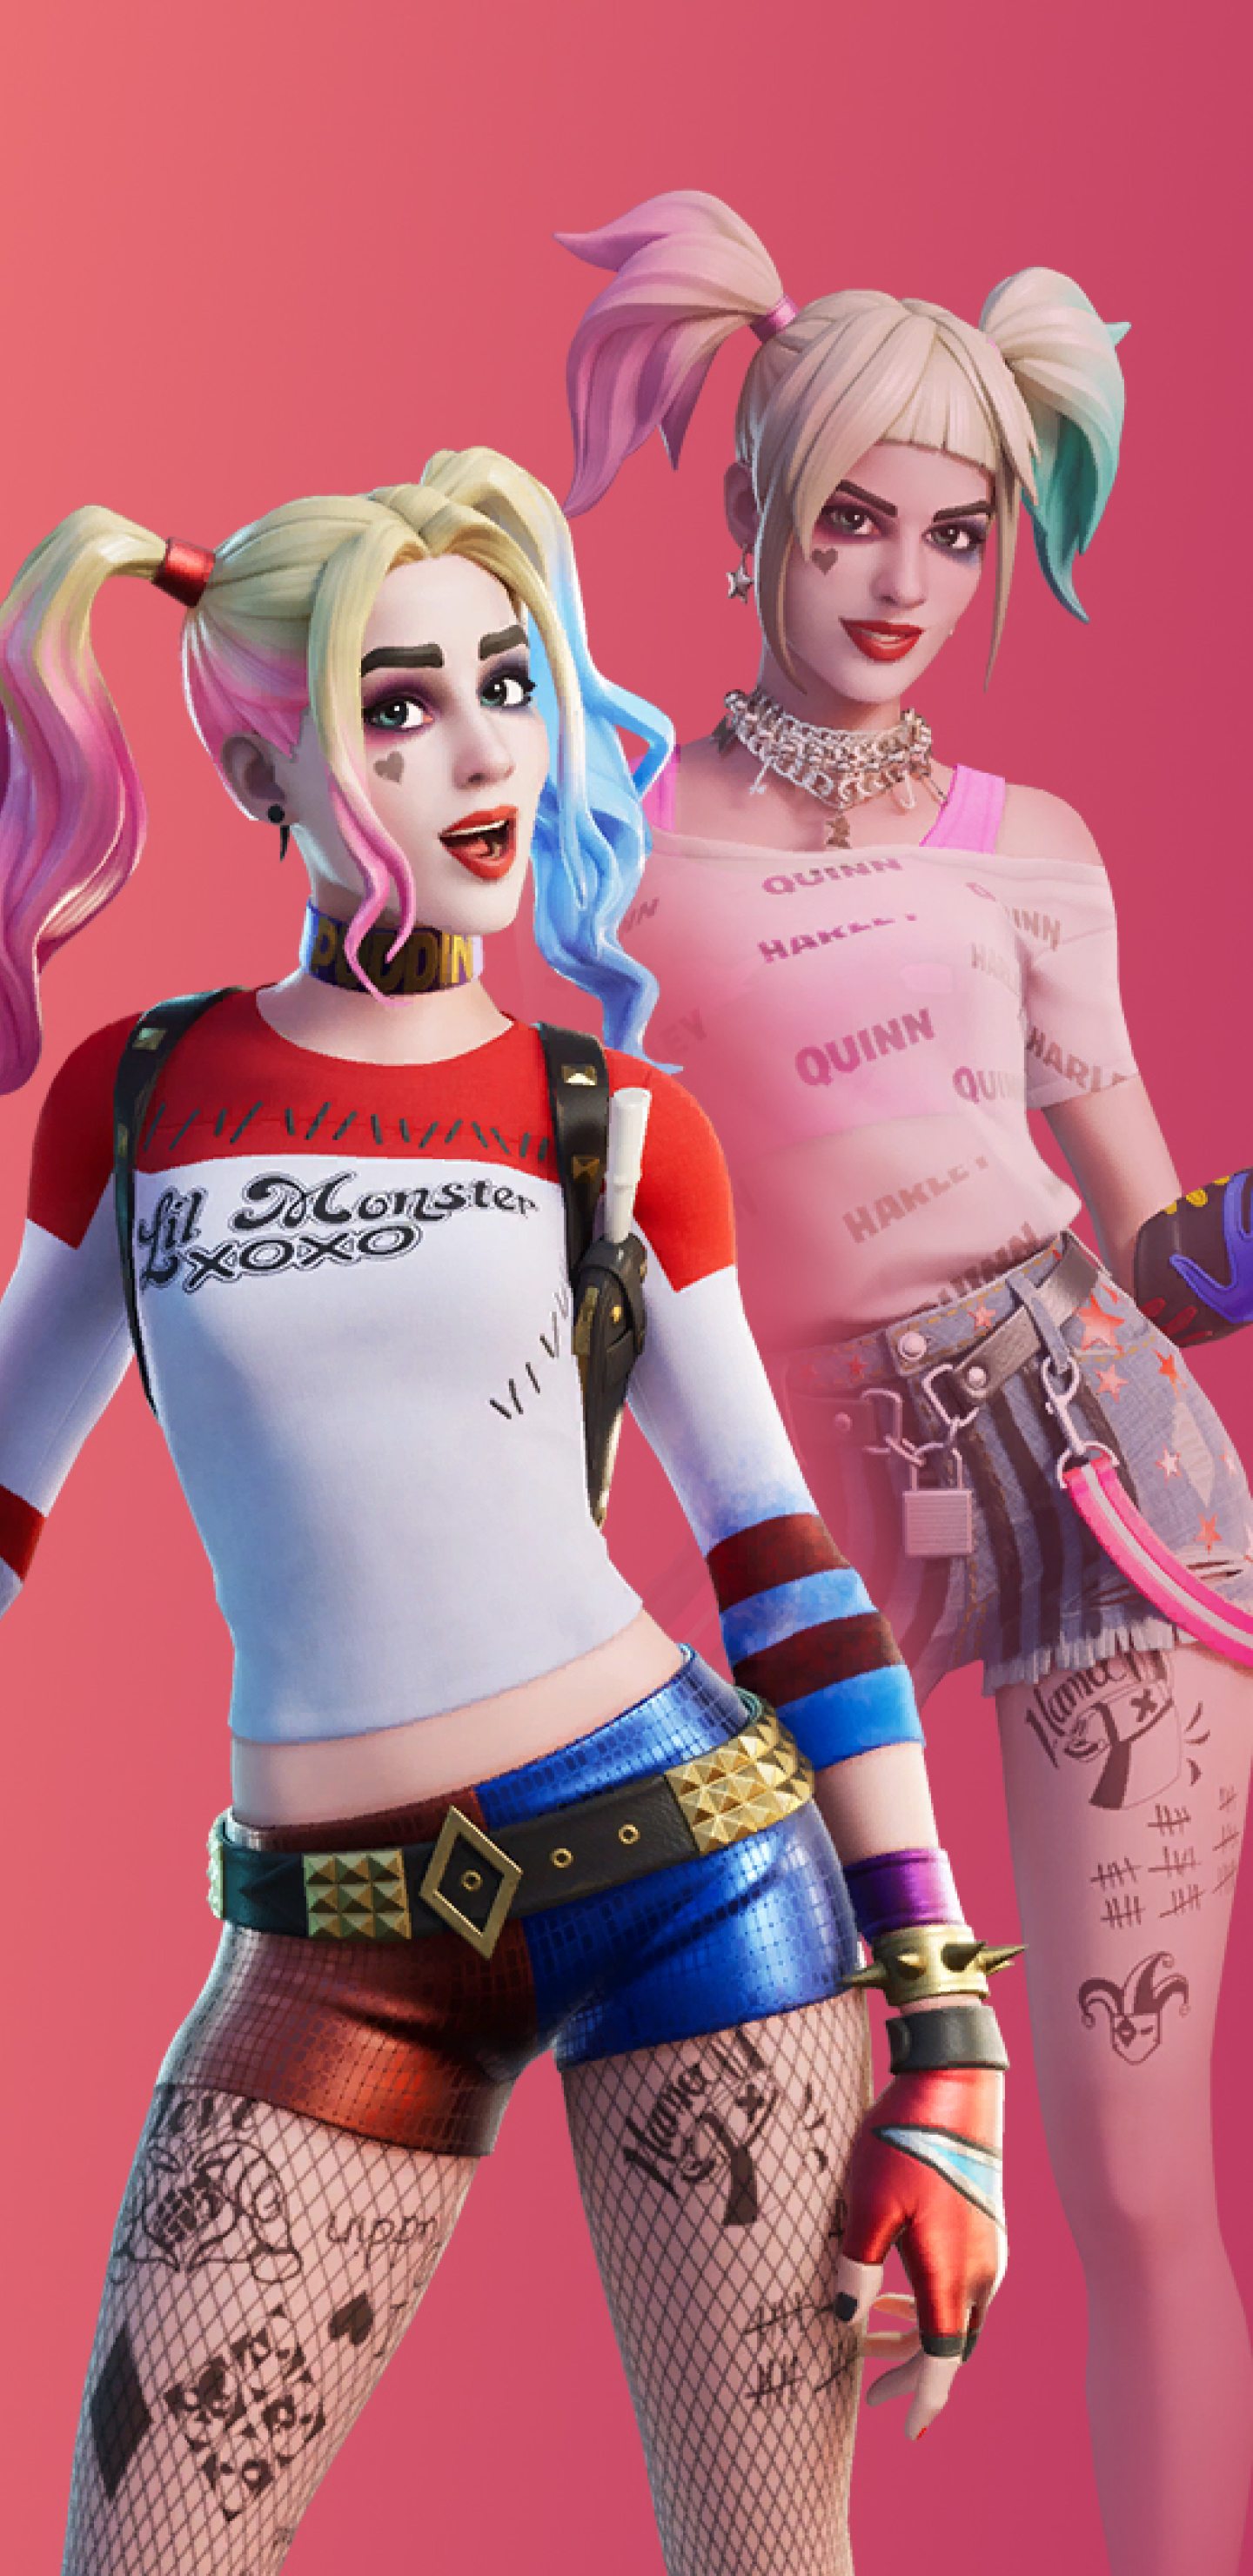 1440x2960 Birds Of Prey Fortnite Skin Samsung Galaxy Note 9 8 S9 S8 S8 Qhd Wallpaper Hd Games 4k Wallpapers Images Photos And Background